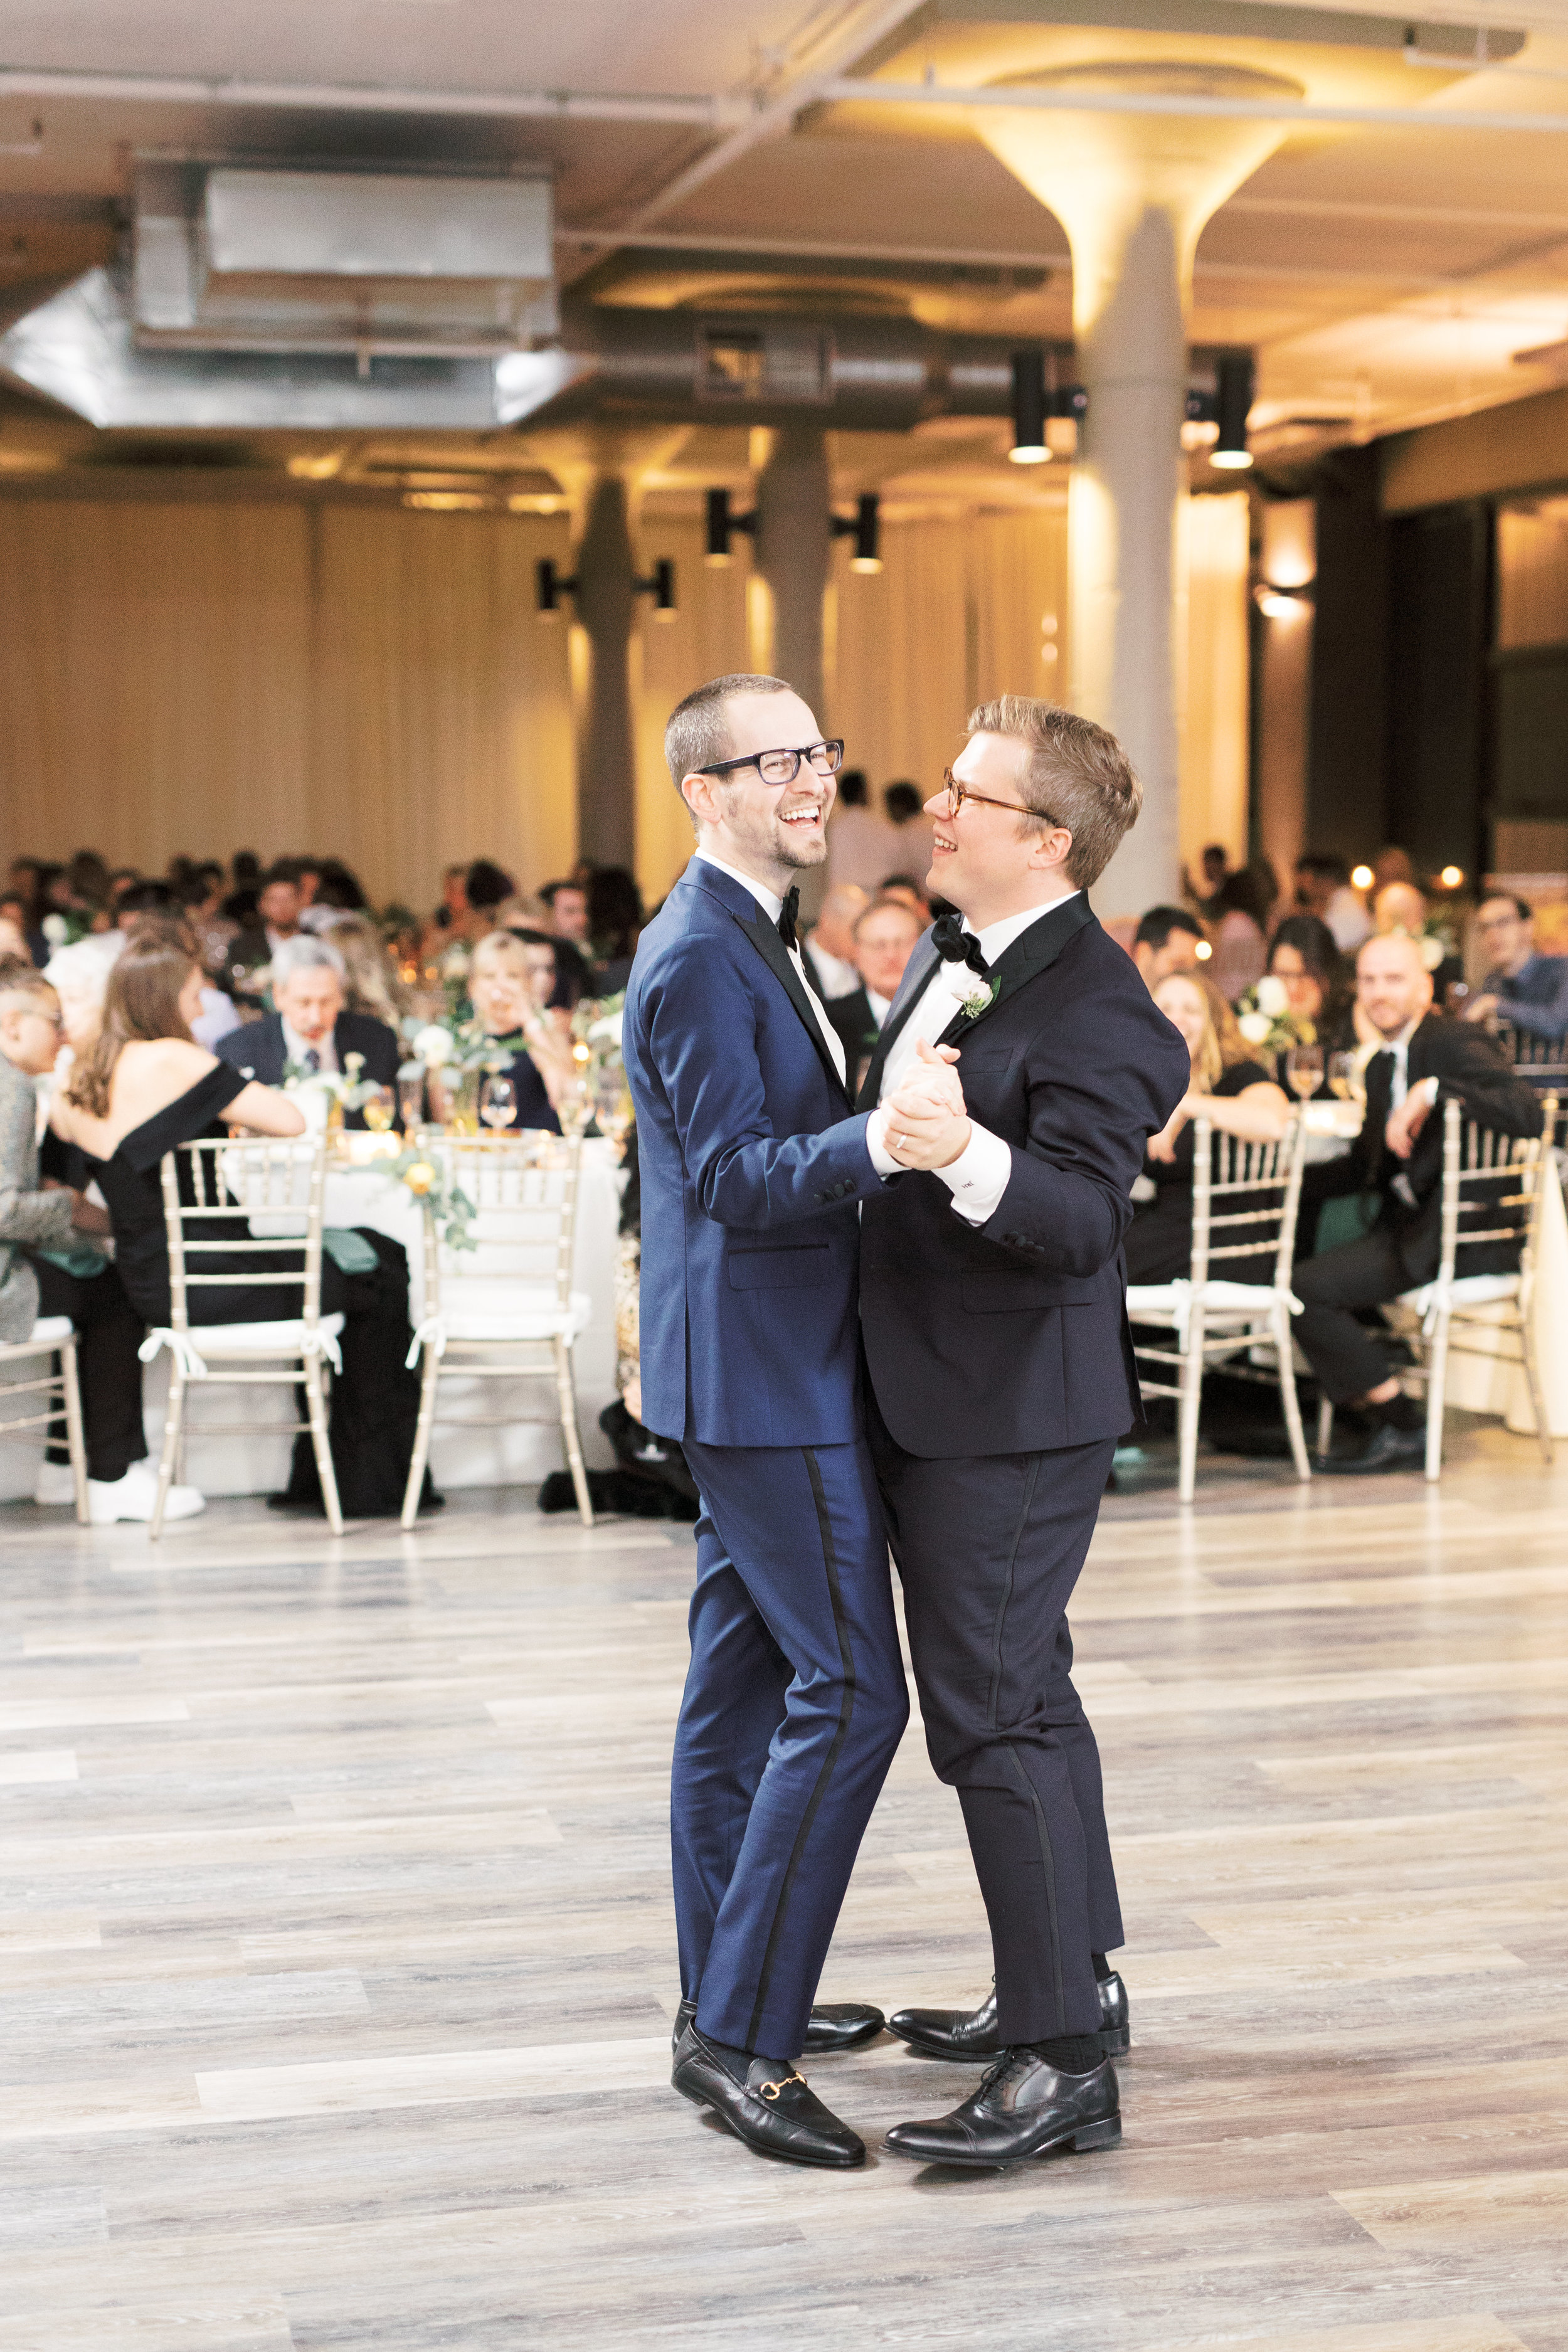 two grooms sharing their first dance as husbands at FAME, Philadelphia wedding venue